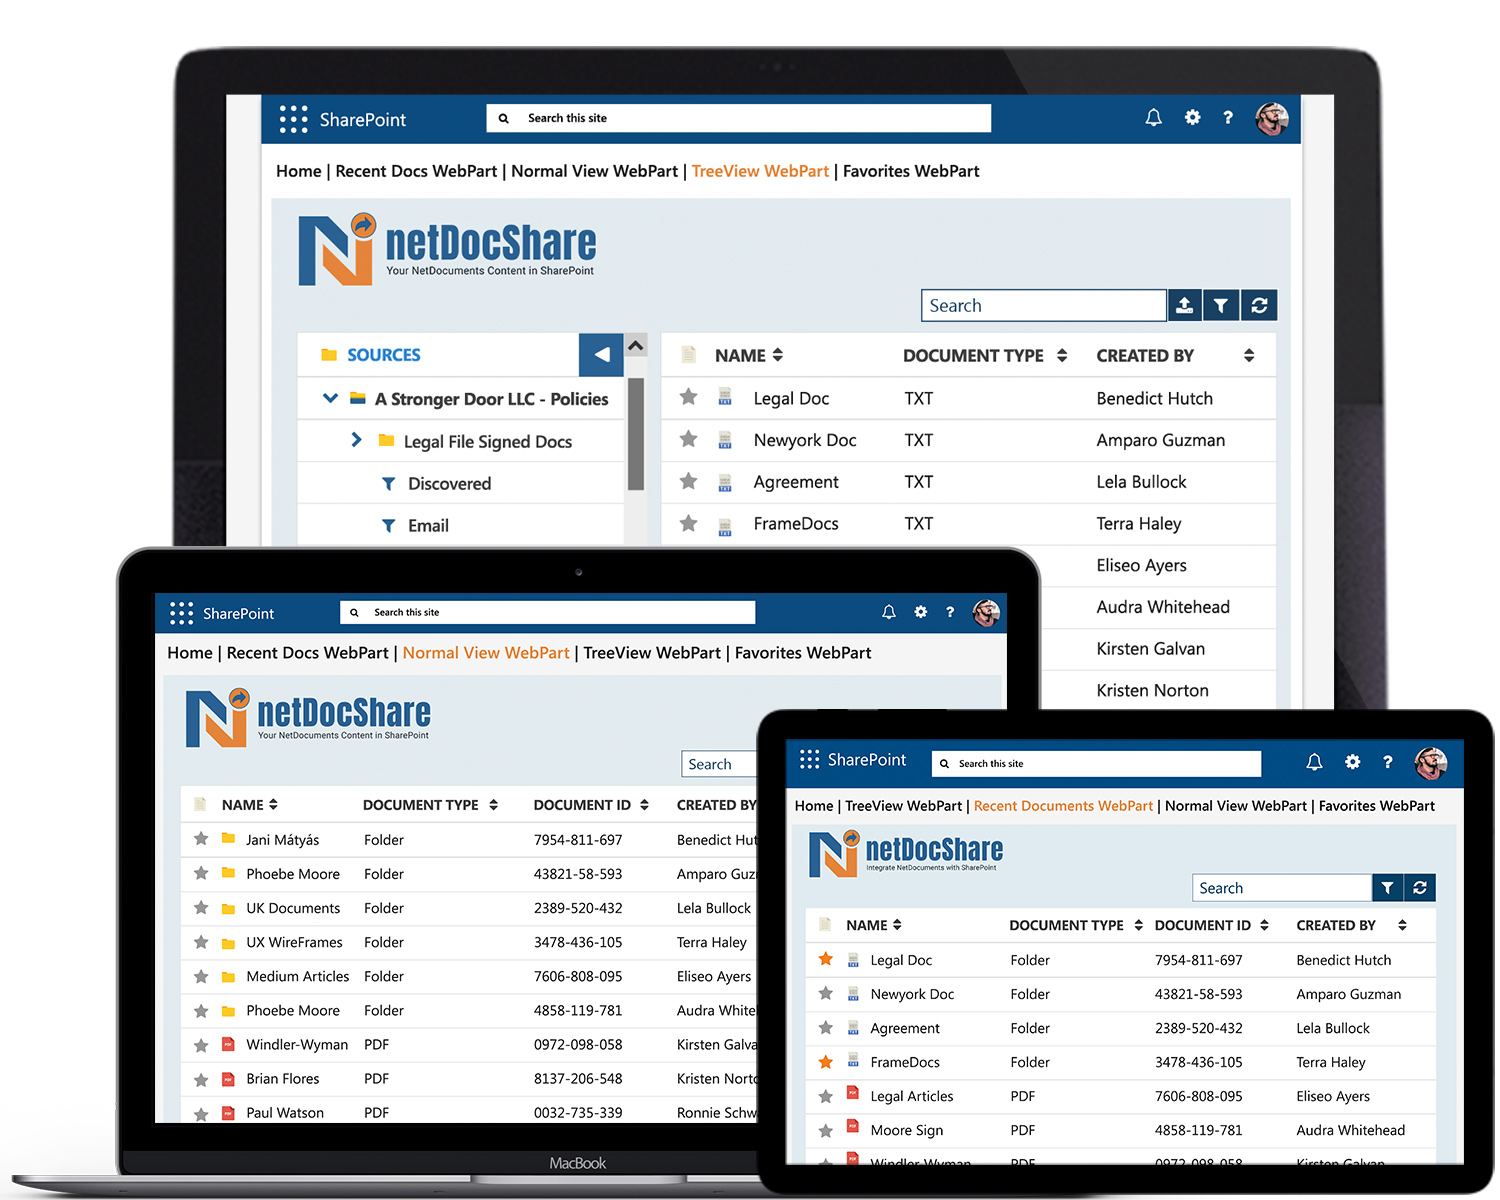 netDocShare-Resposive-Desktop-iPad-laptop